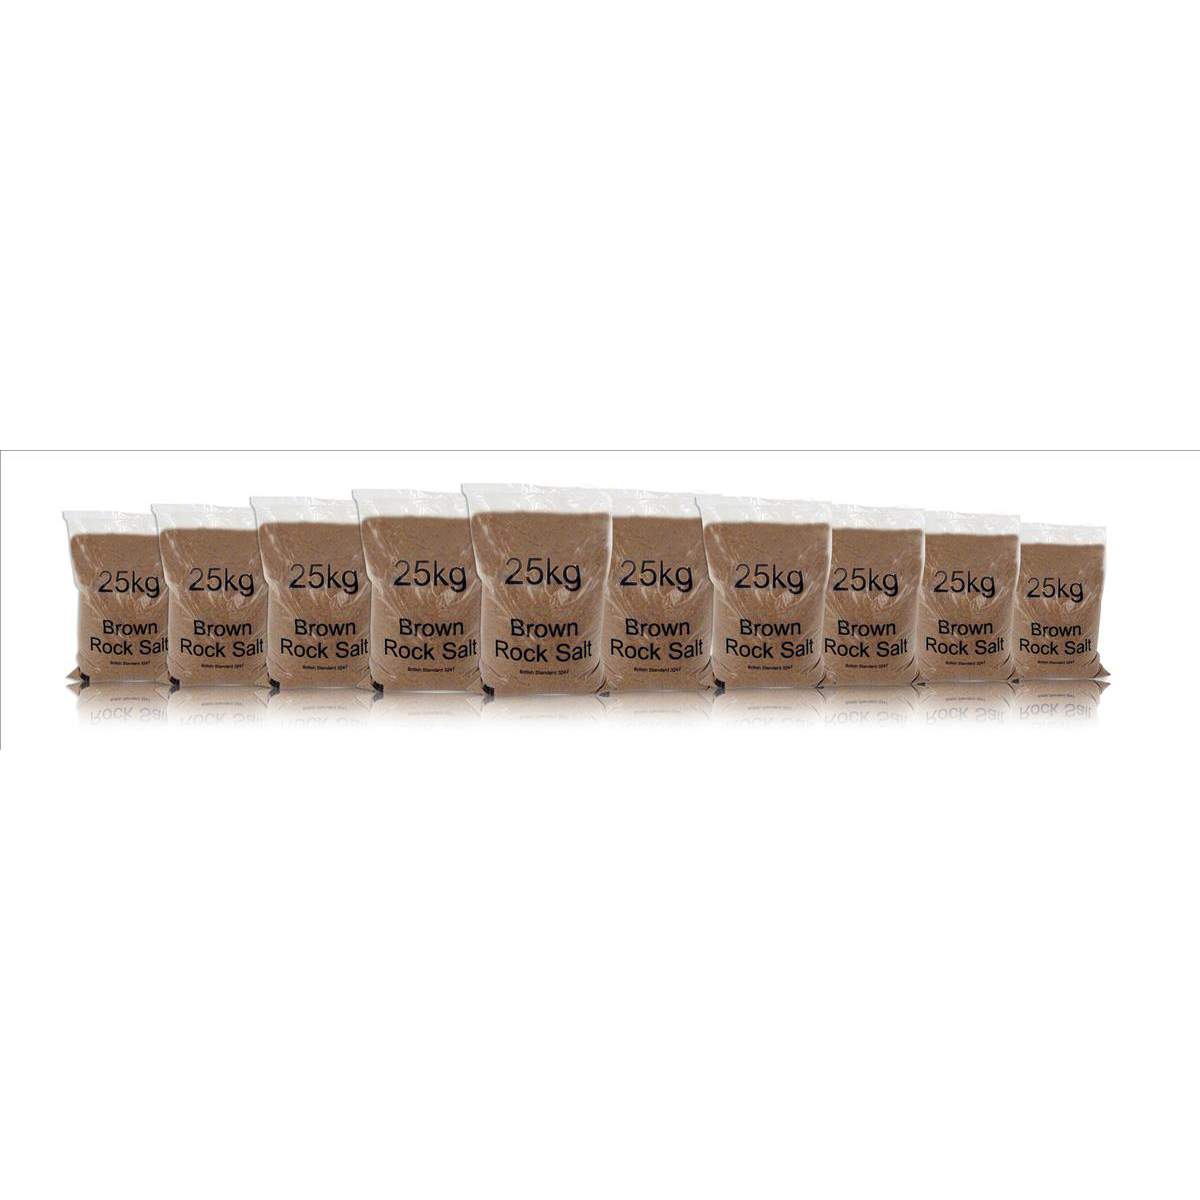 Image for Rock Salt De-icing 25kg Brown [Packed 10]